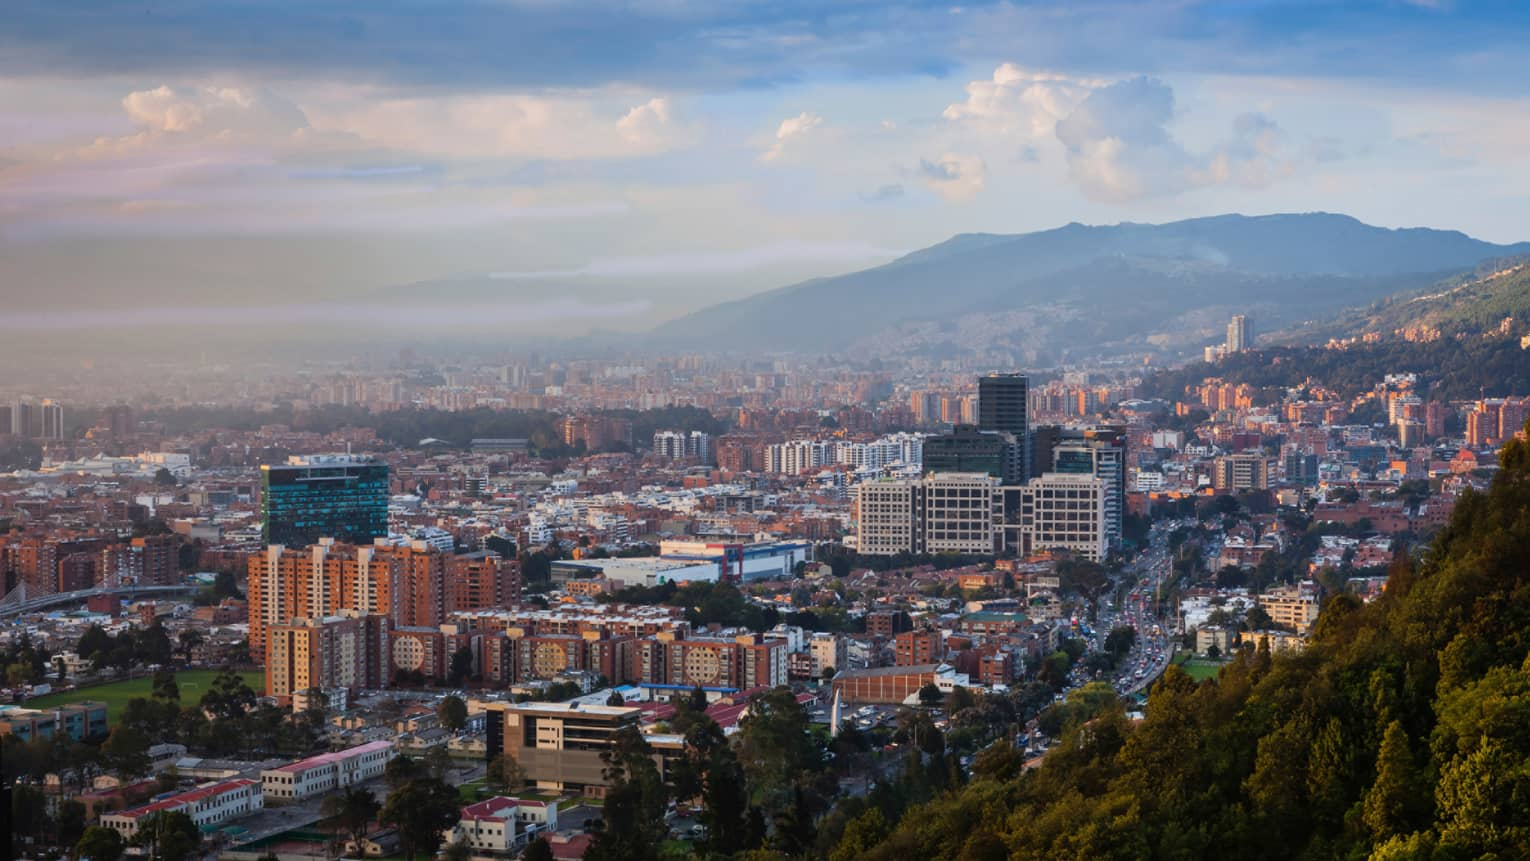 Aerial view of Bogota city, buildings and houses below misty mountains